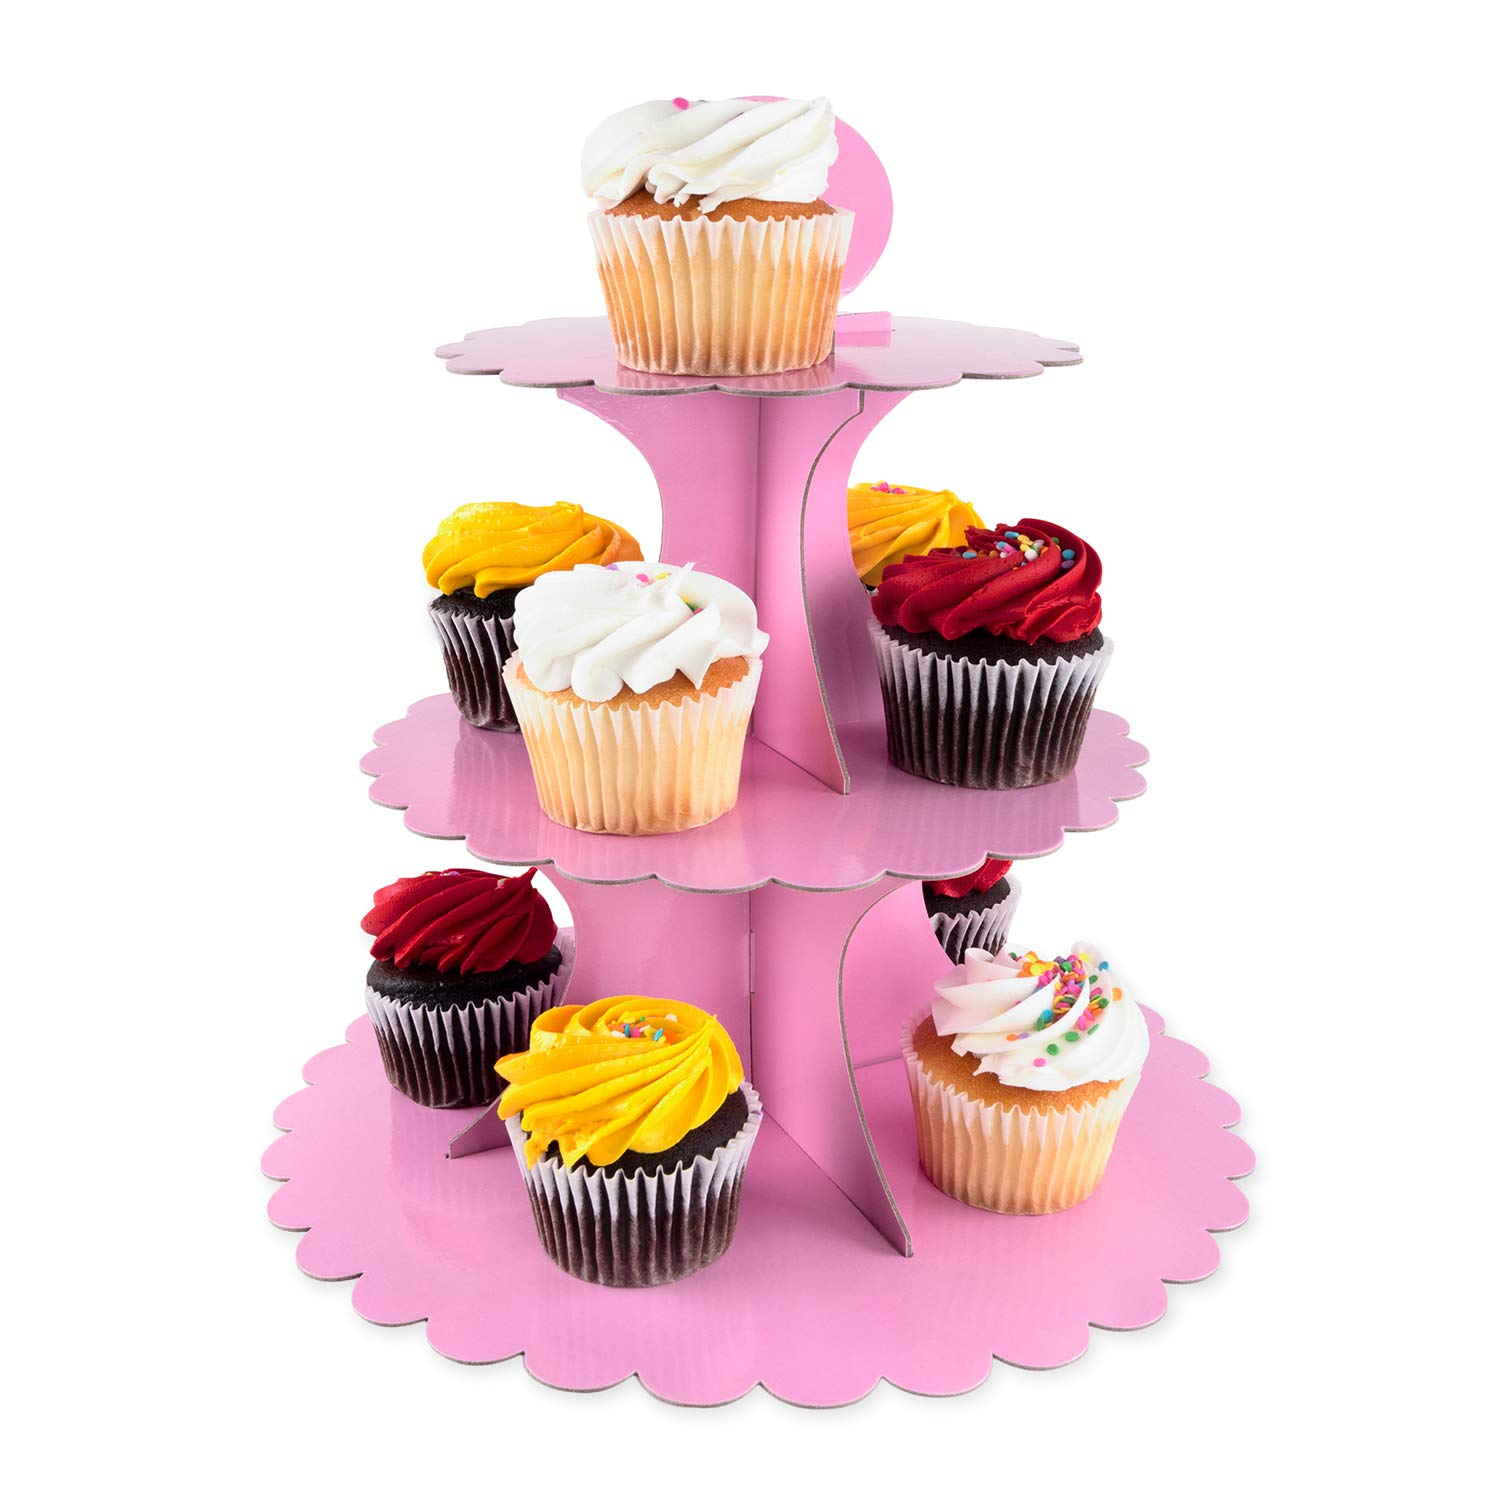 3 Tier Cupcake Cardboard Stand with Blank Canvas Design for Pastry Servings Platter, Birthdays, Dessert Tower Decorations (1 Stand) (Blue)